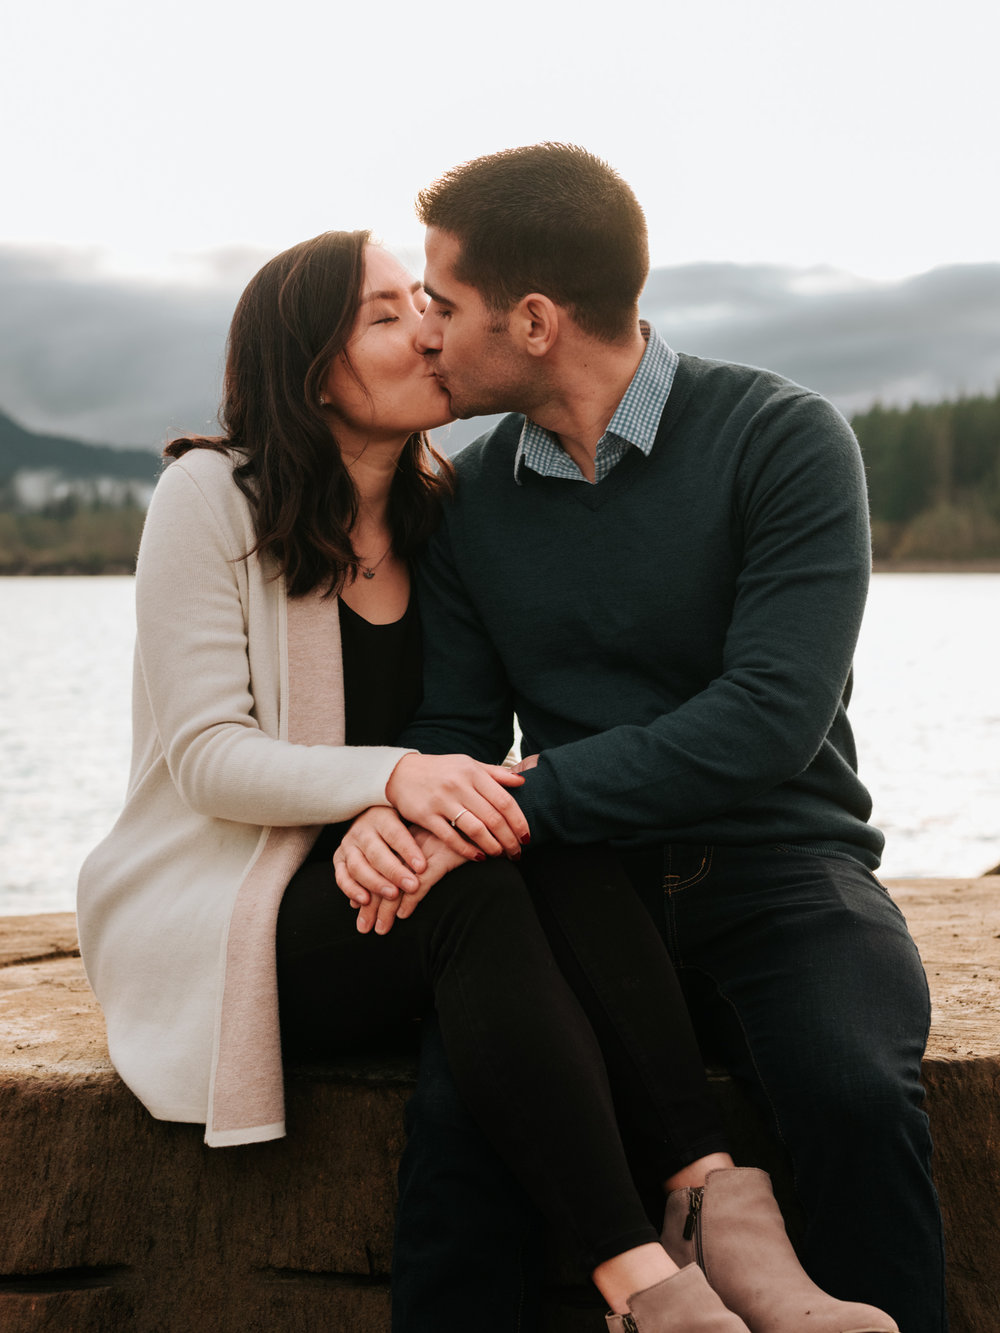 Seattle Engagement Photographer_Stolen Glimpses 44.jpg